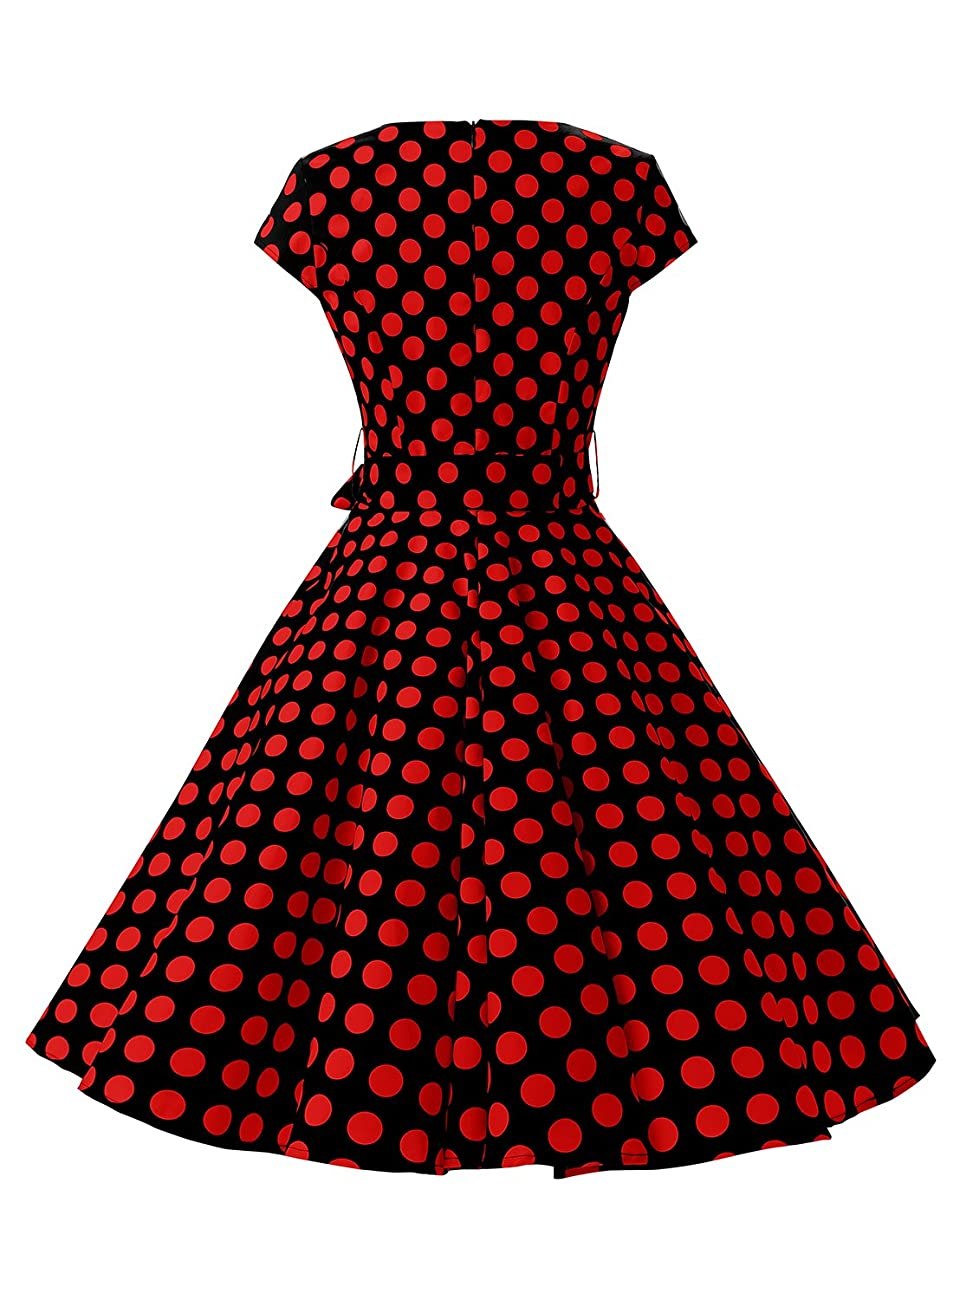 Dressystar Vintage 1950s Polka Dot and Solid Color Party Prom Dresses Rockabilly Cap Sleeves 2